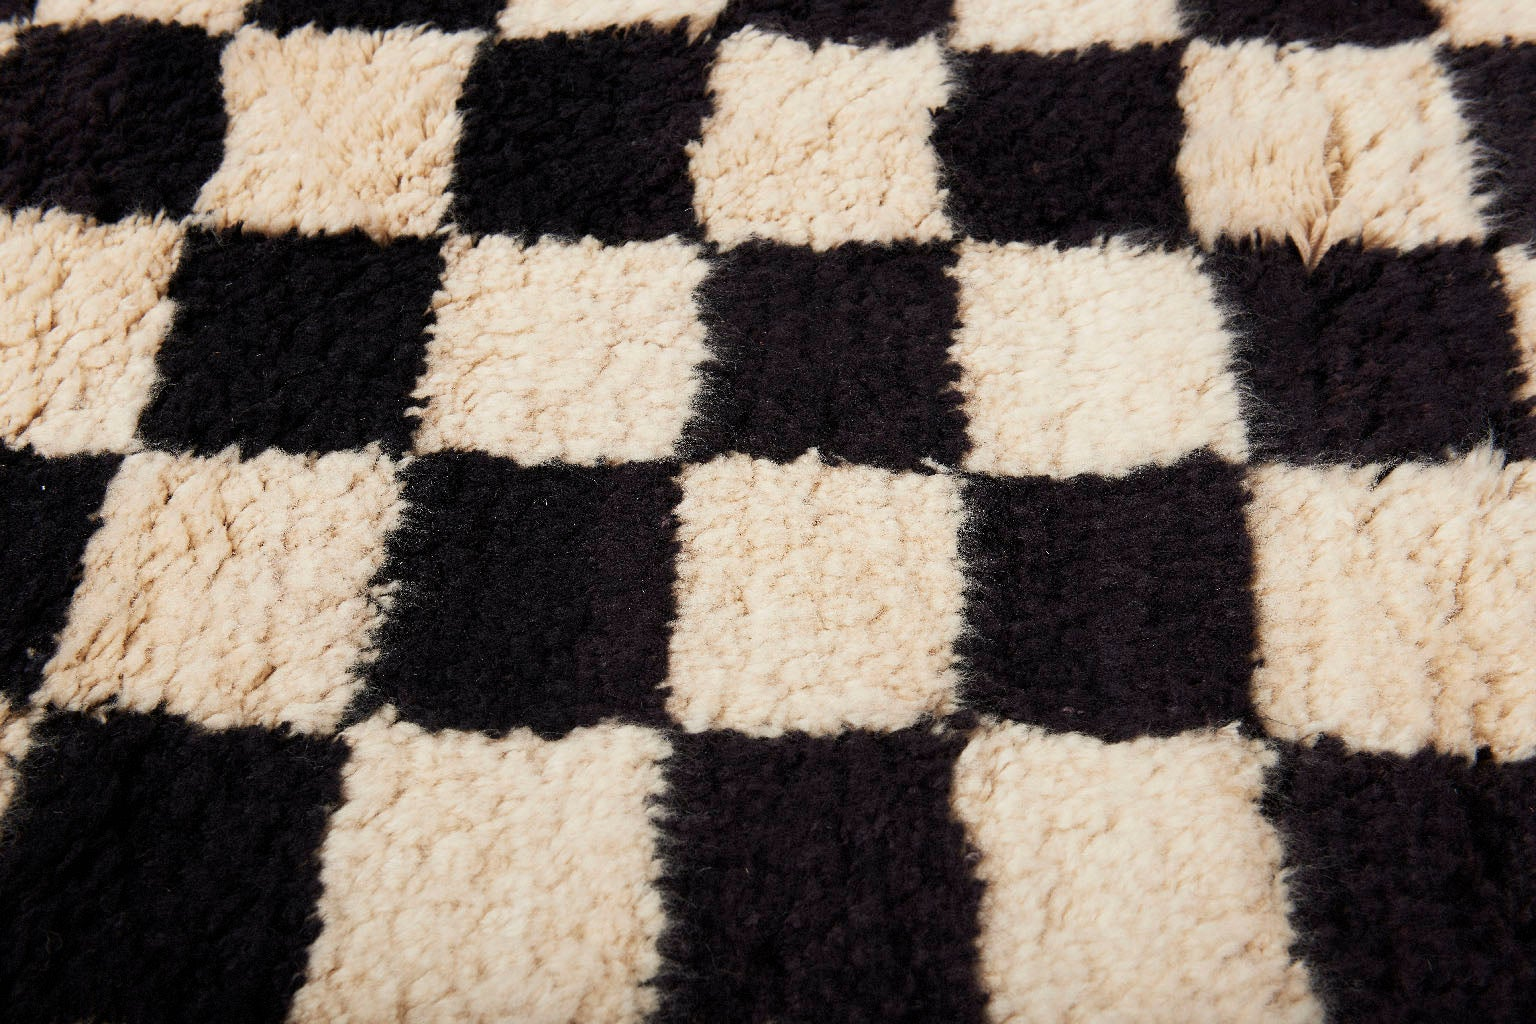 AELFIE Checkerboard Black And White Shag Modern Geometric Hand Knotted Rug  Carpet For Sale At 1stdibs